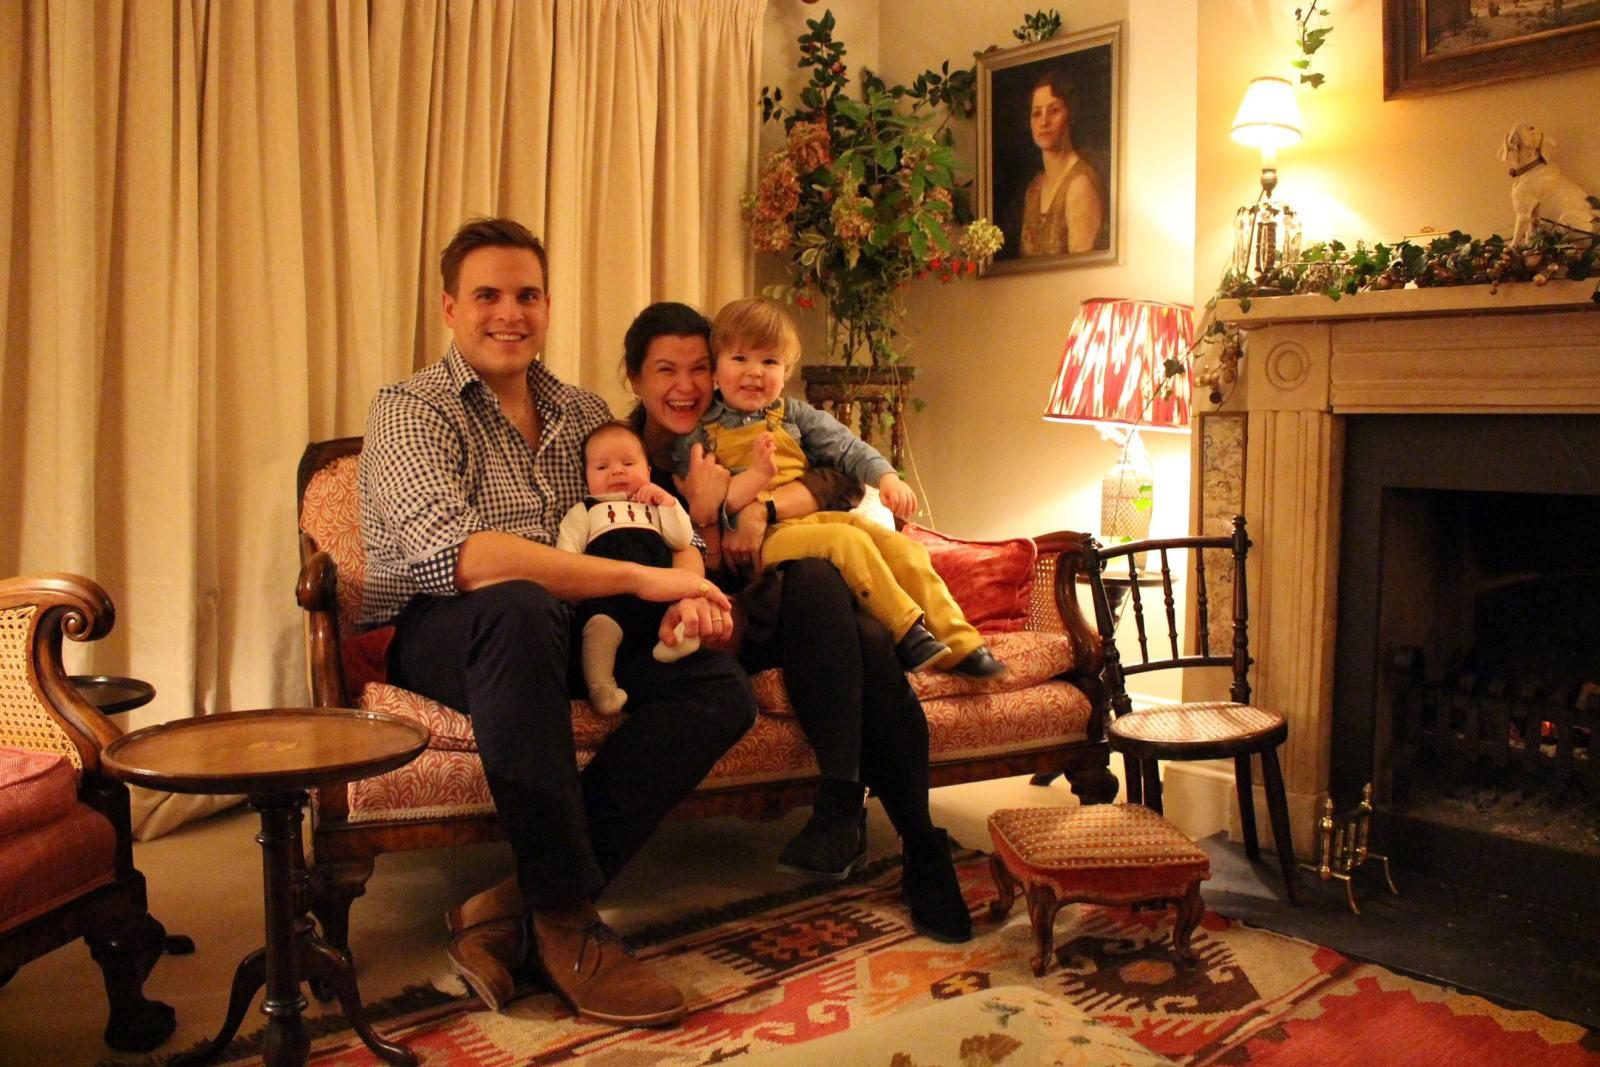 New Mum Diary: surviving our first few weeks as a family of four